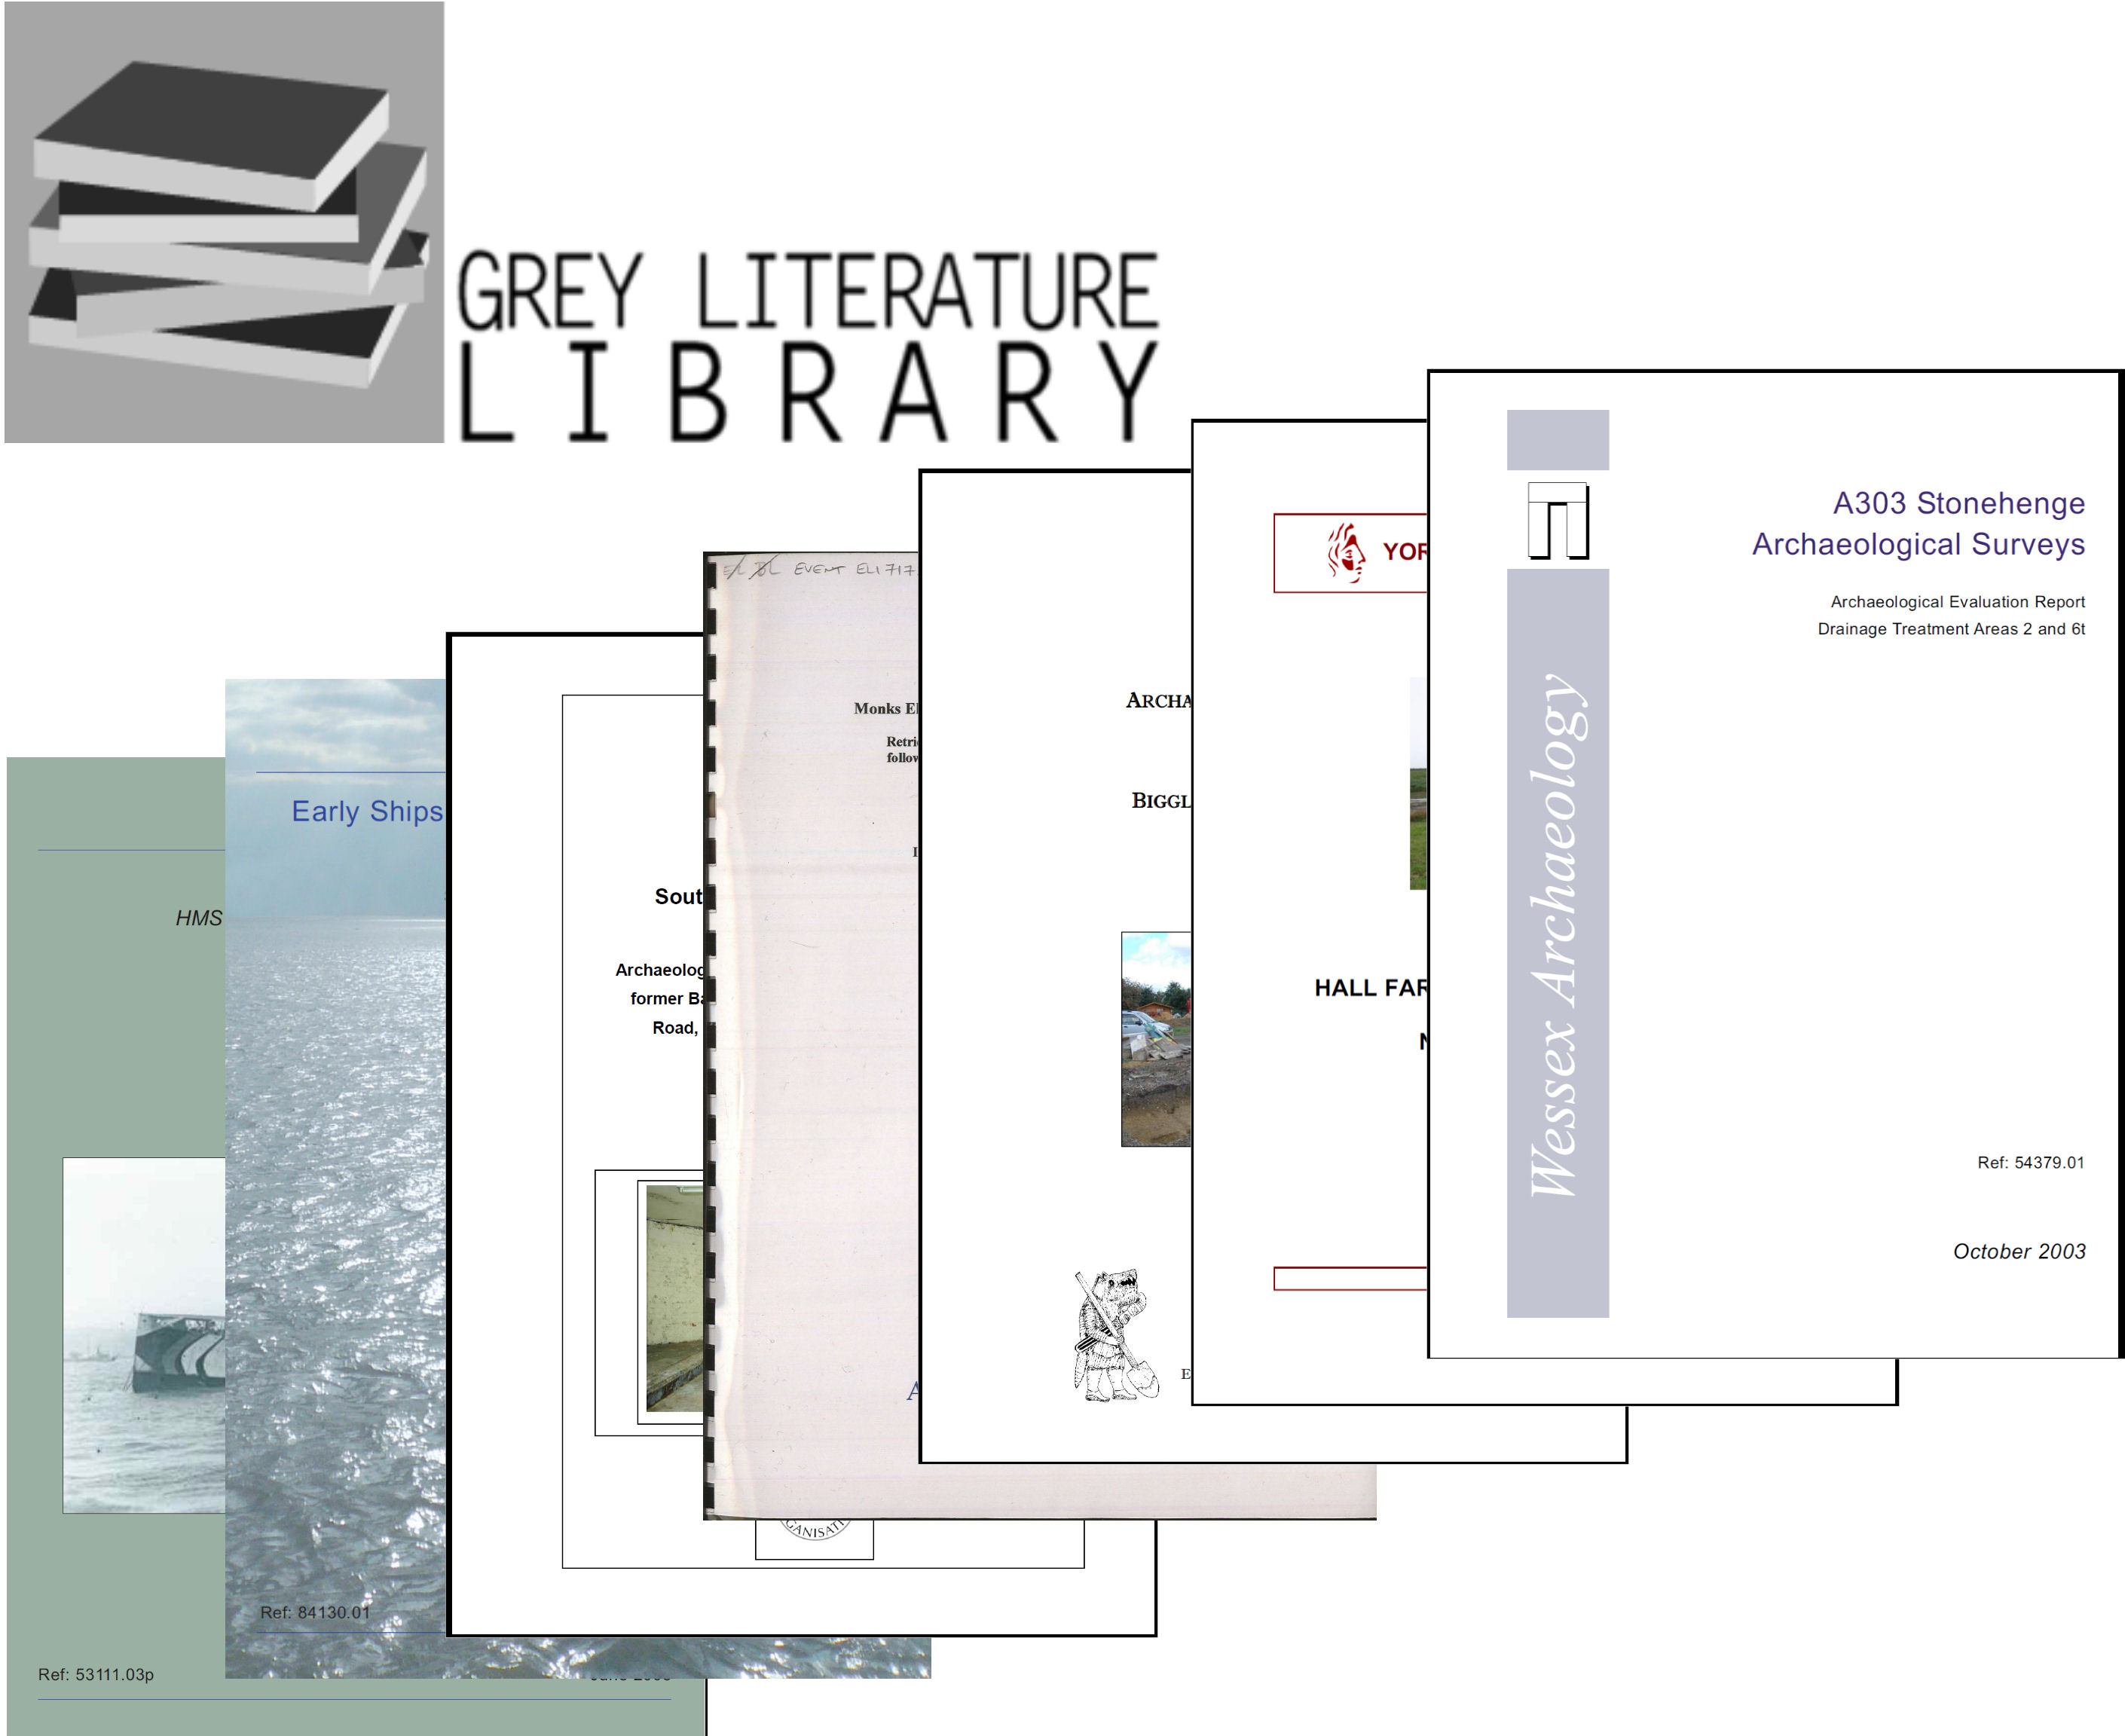 grey_lit_ibrary